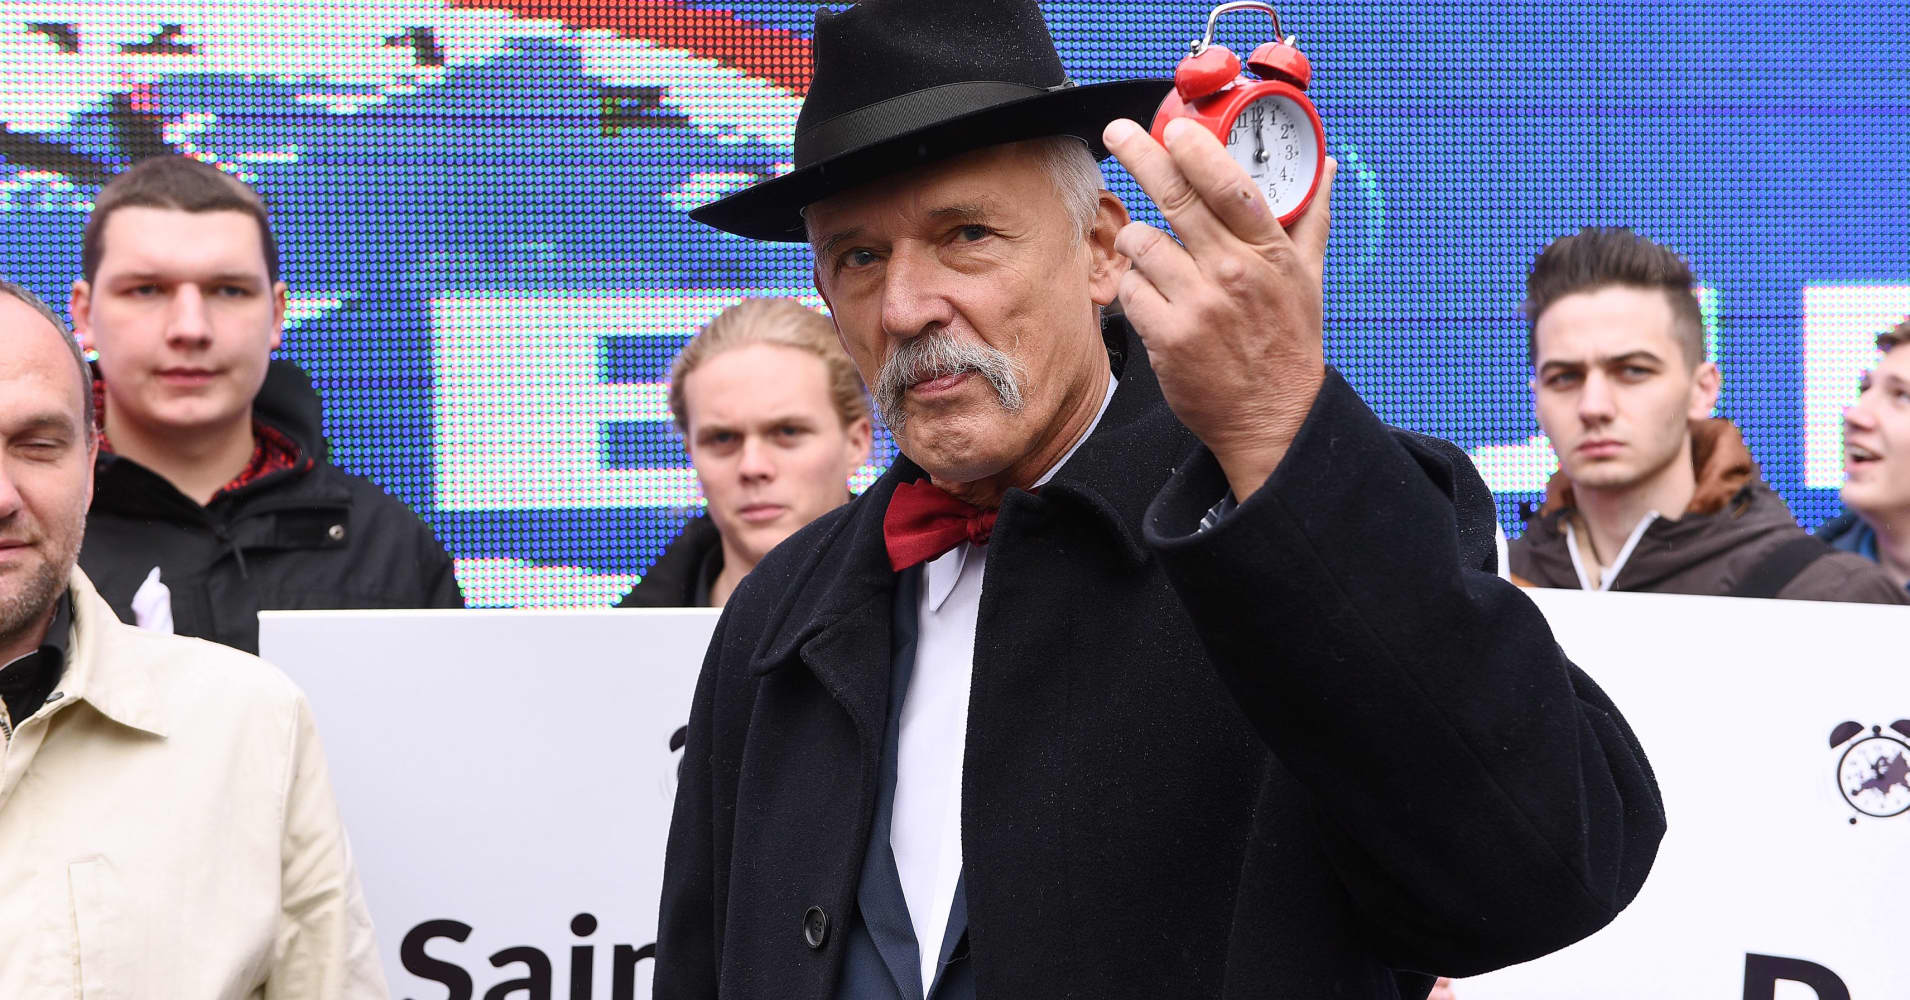 Janusz Korwin-Mikke participates in the 5th March of Freedom and Sovereignty on October 08, 2016 in Warsaw, Poland.